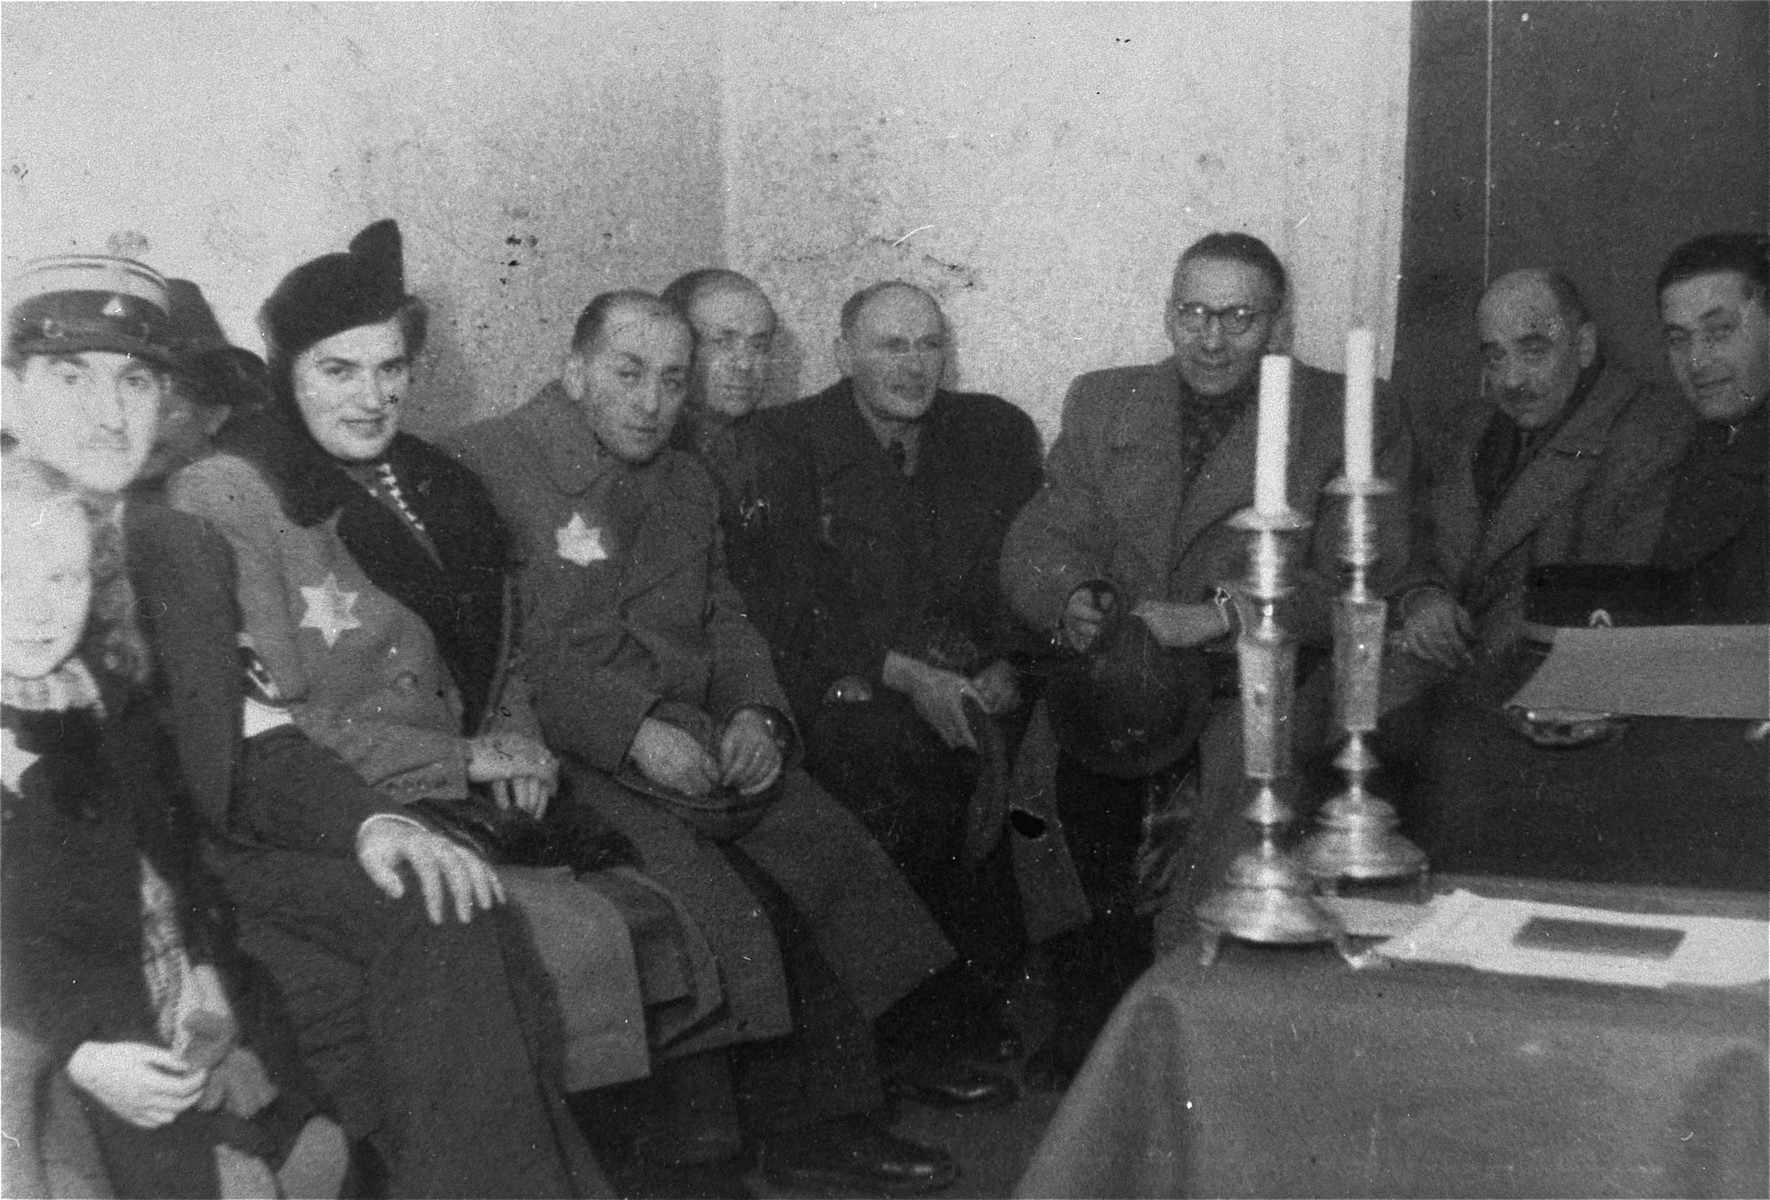 Social gathering in the Marysin police station in the Lodz ghetto.    Among those pictured are Zeligman (first on the left) and Leon Rozenblat (second from the right).  Baruch Braszker is fourth from the left and [Uberbaum is on the far right.]